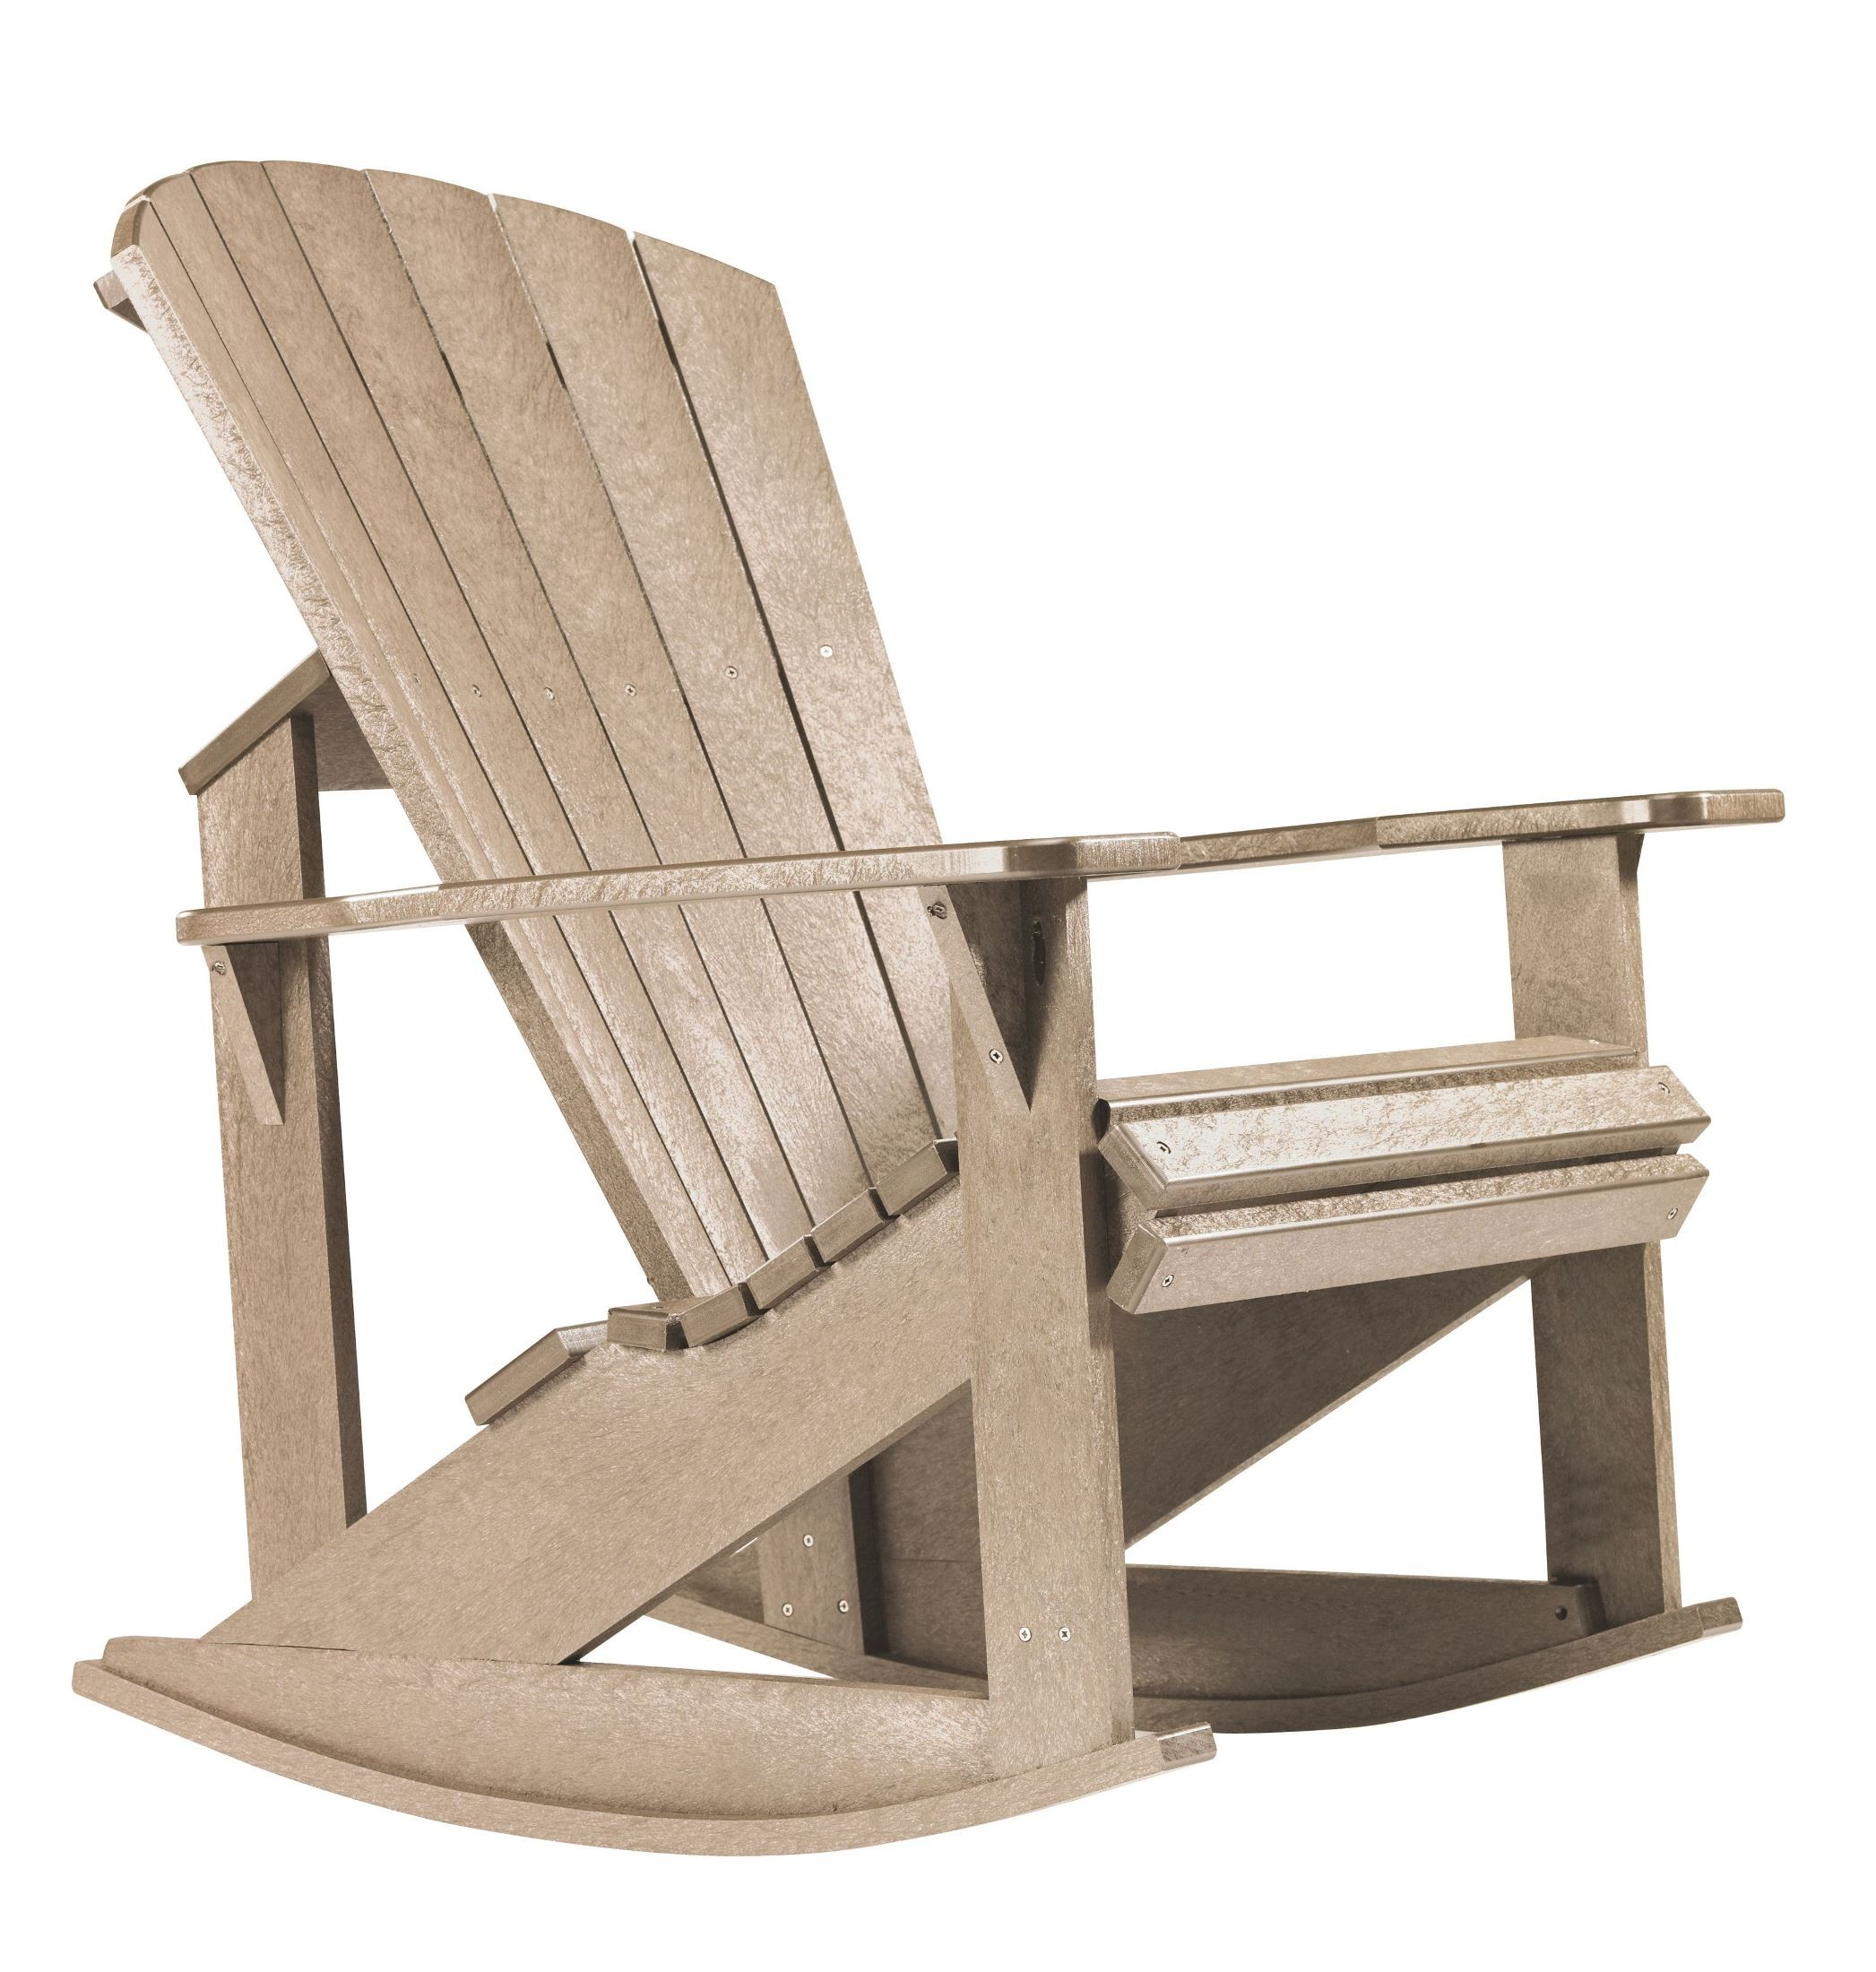 Generations Beige Adirondack Rocking Chair from CR Plastic